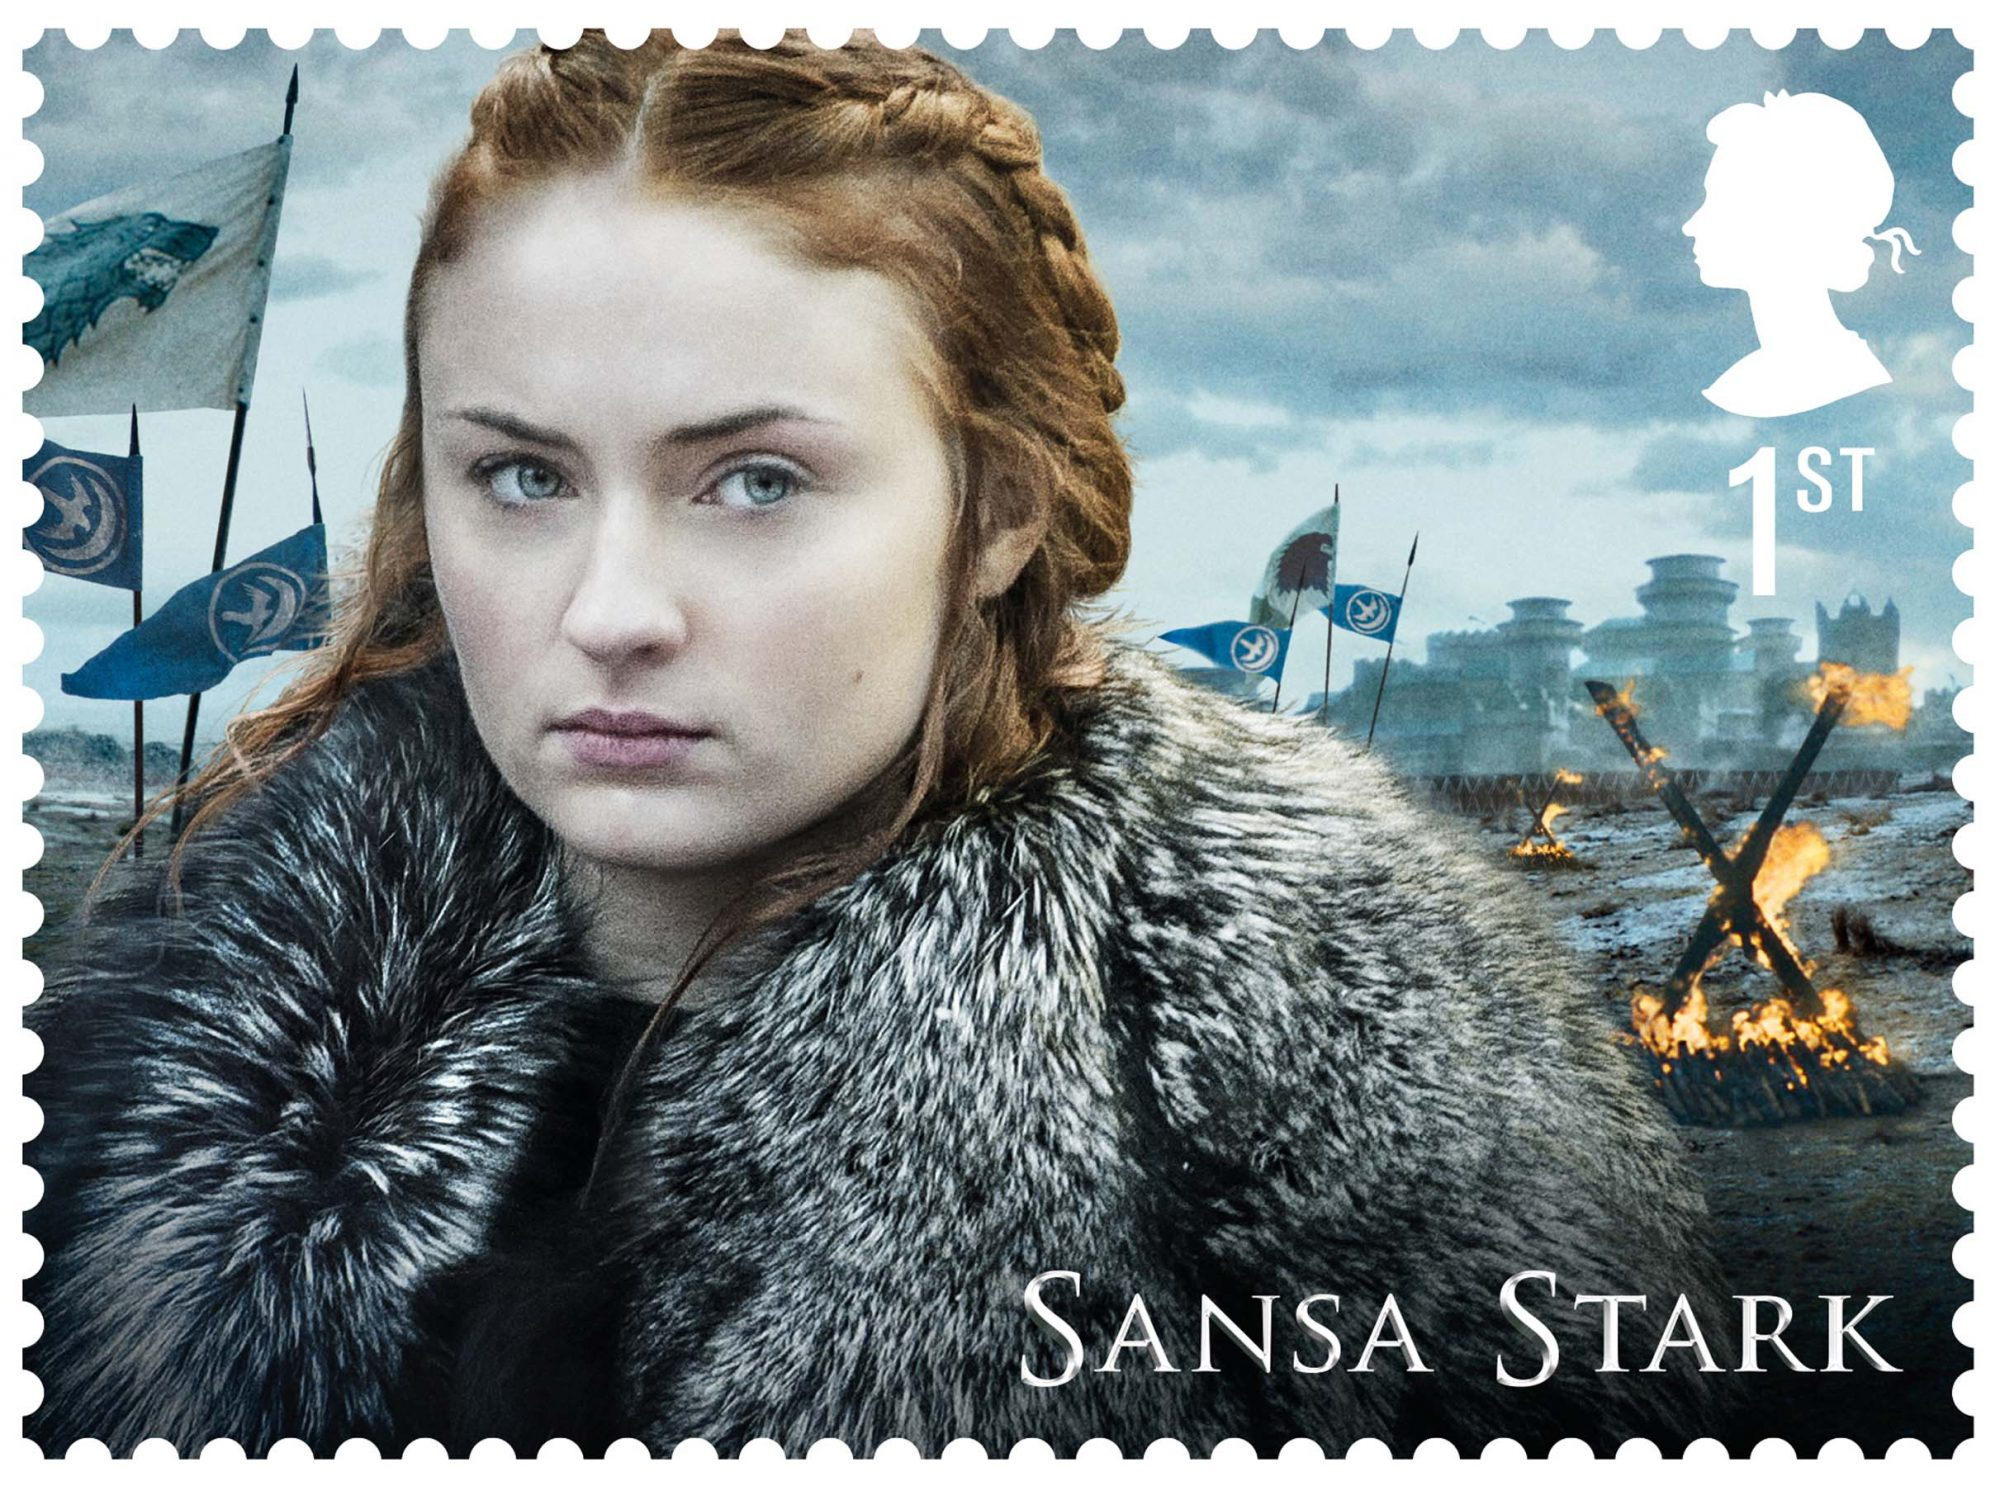 GoT Sansa Stark stamp